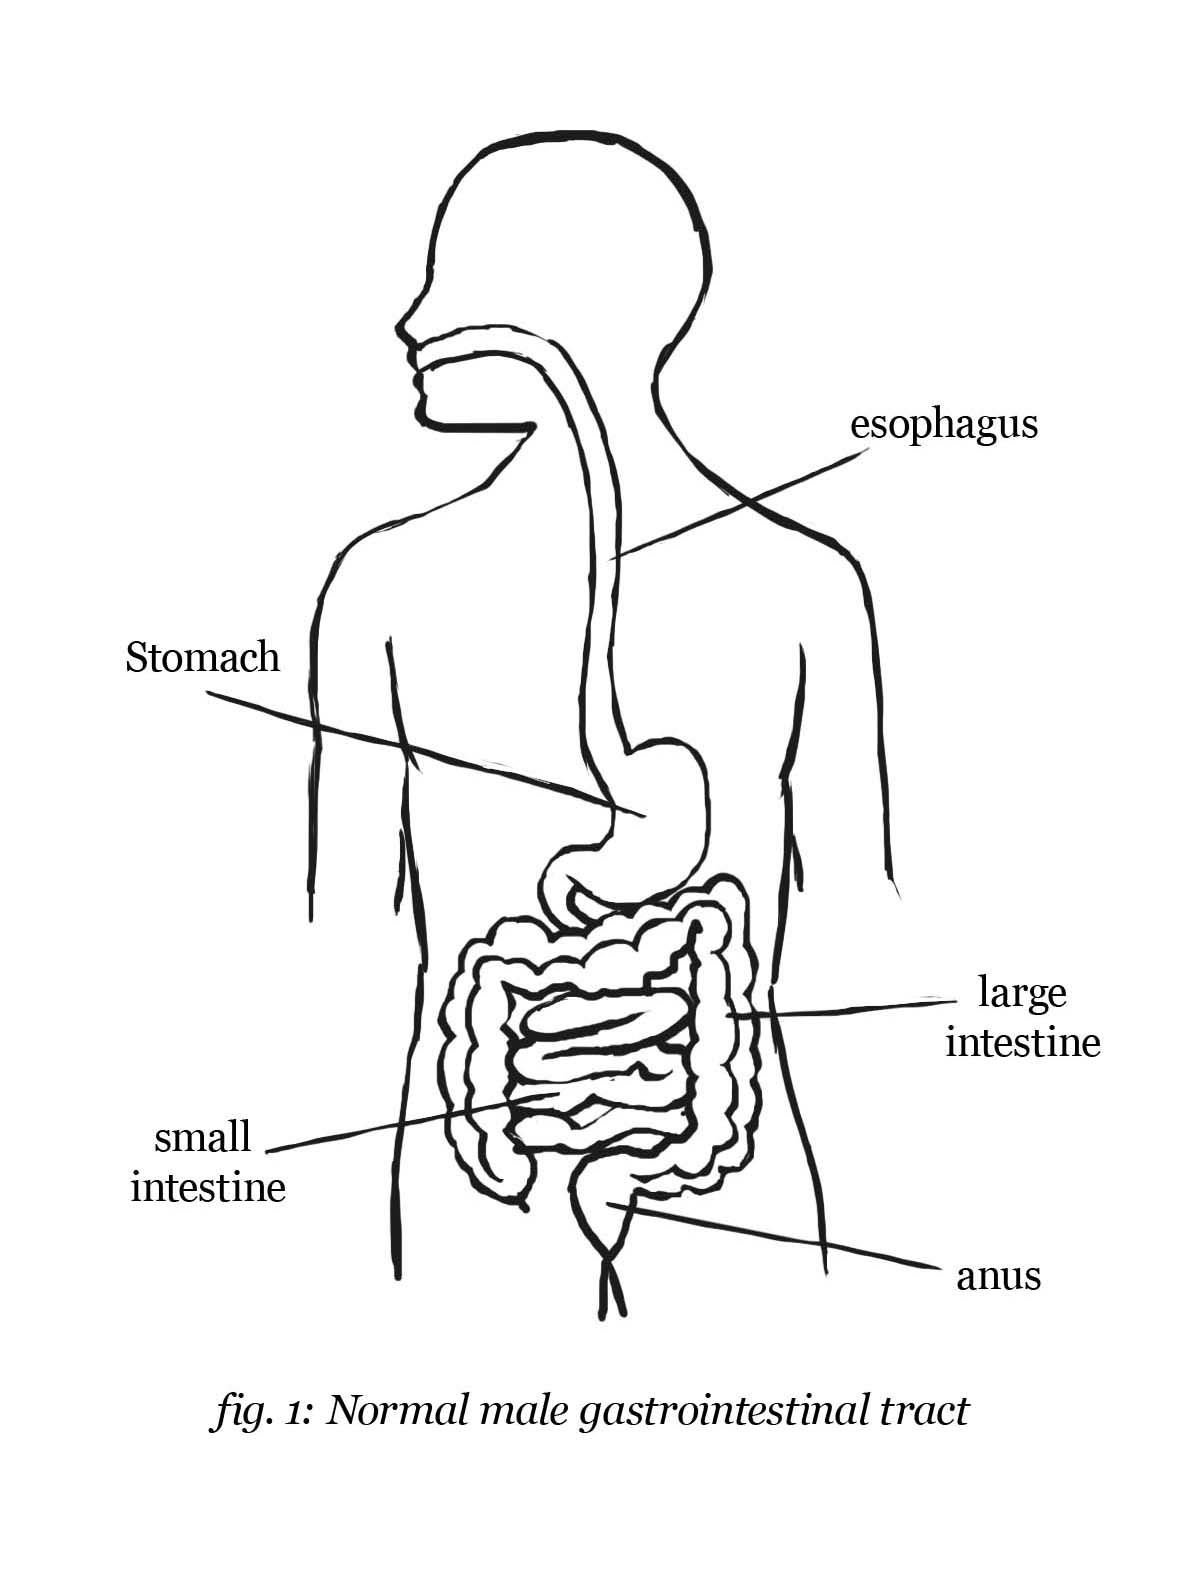 coloring sheet digestive system coloring page digestive system coloring page coloring home coloring system page coloring digestive sheet